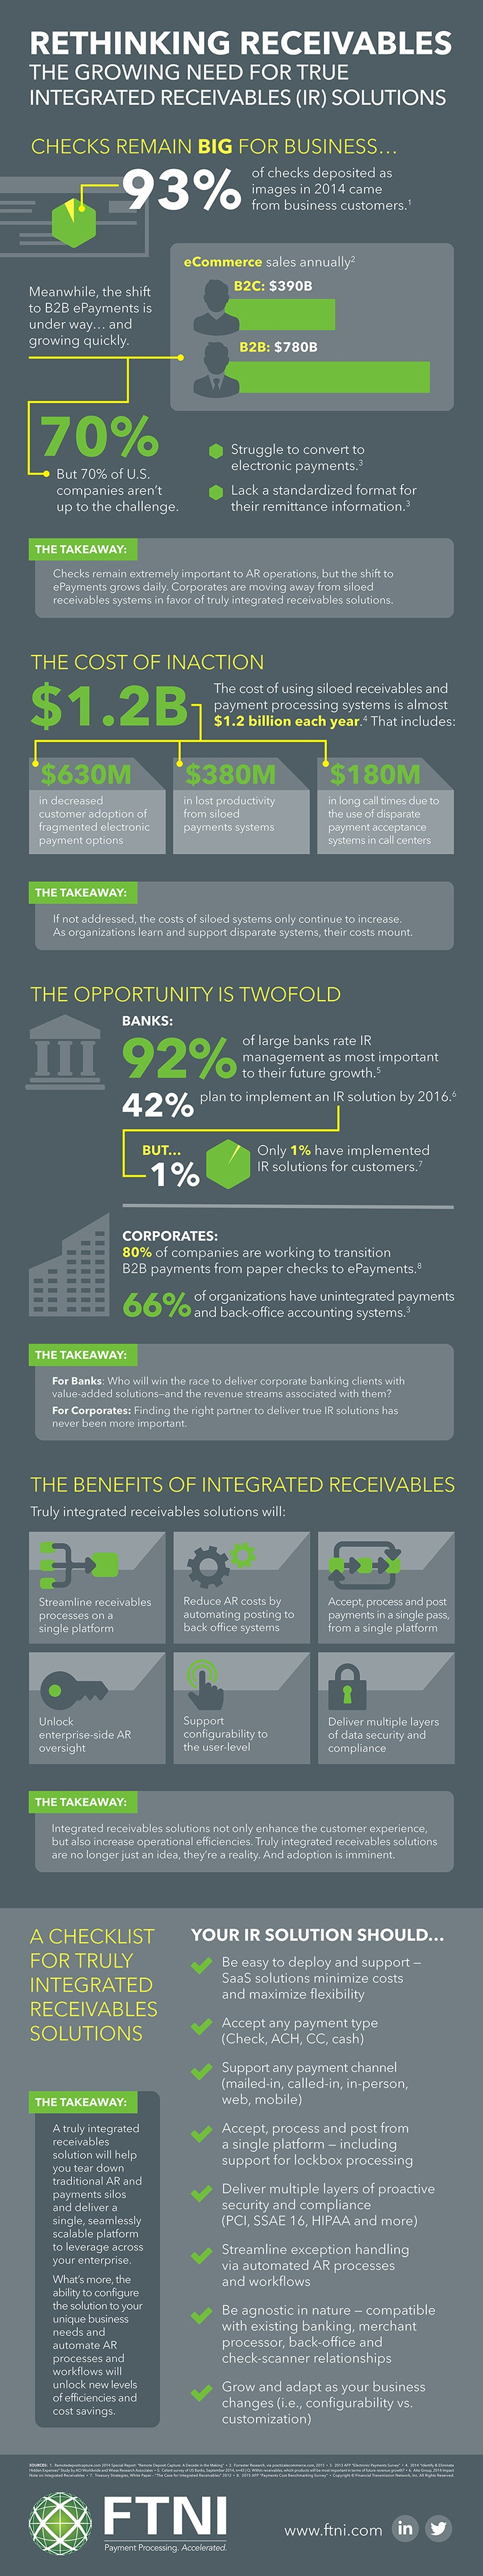 Integrated_Receivables_Infographic_SMALL.jpg